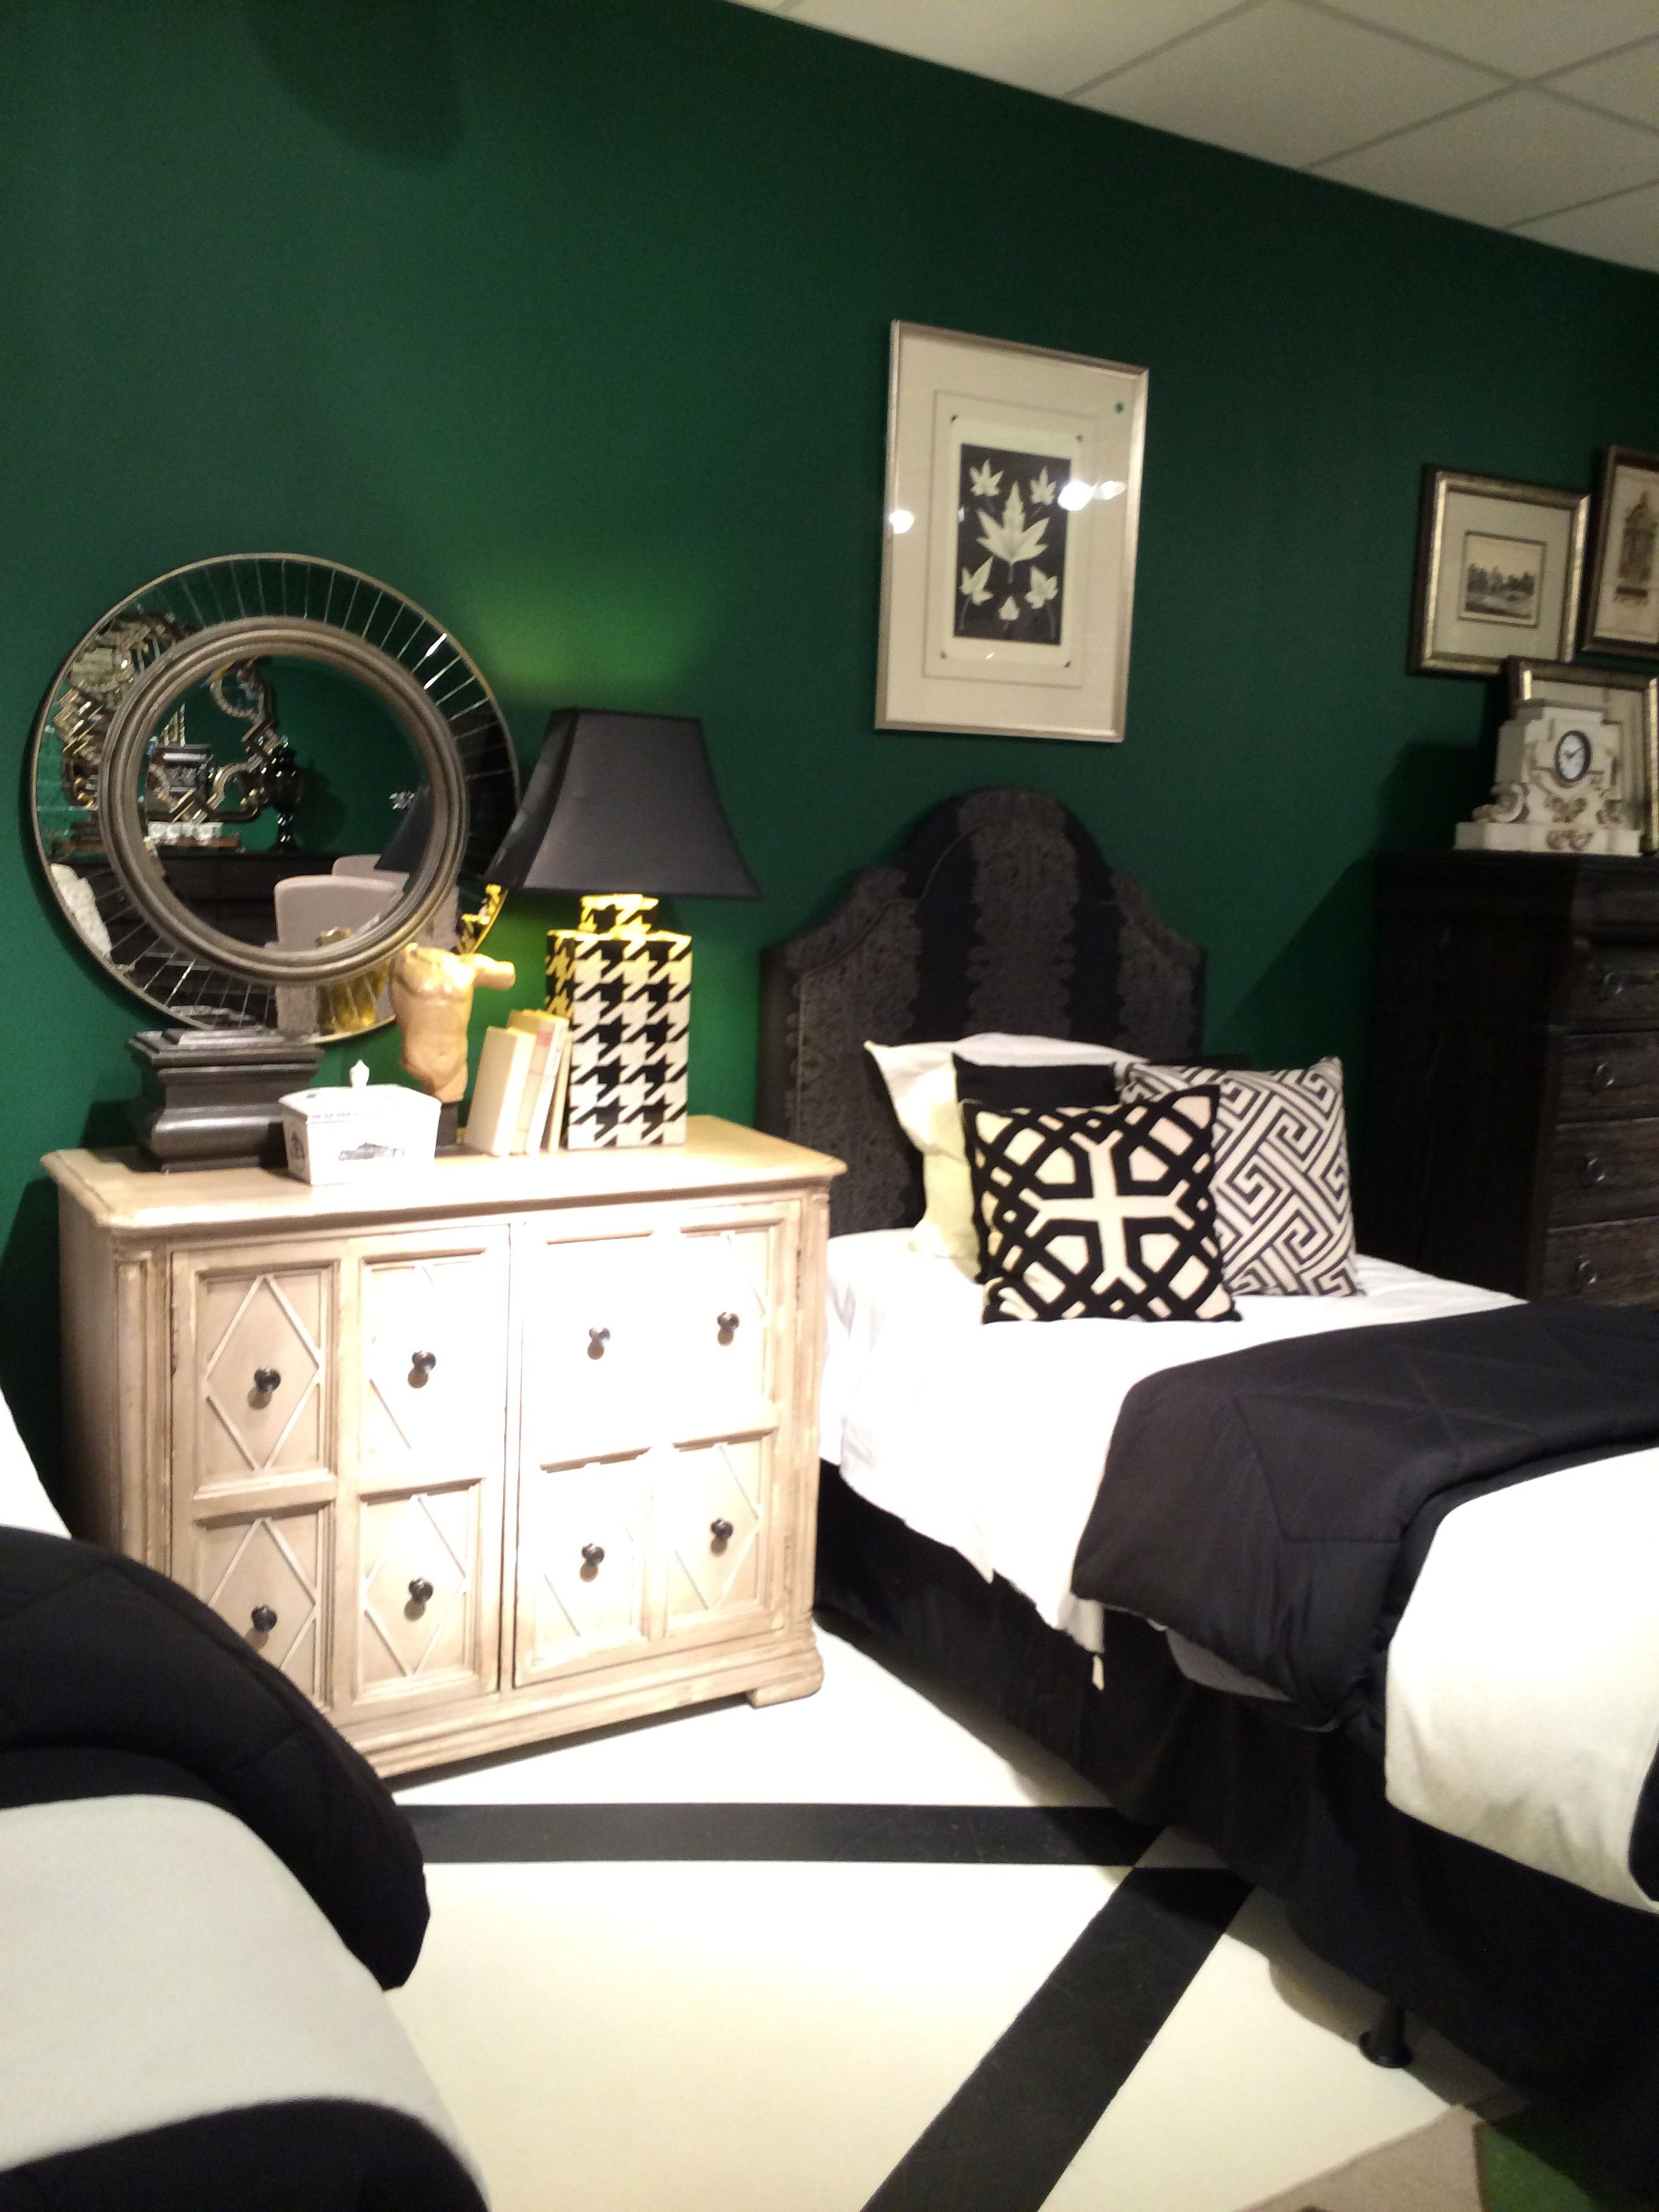 British Racing Green walls nicely contrast with the white and black ...